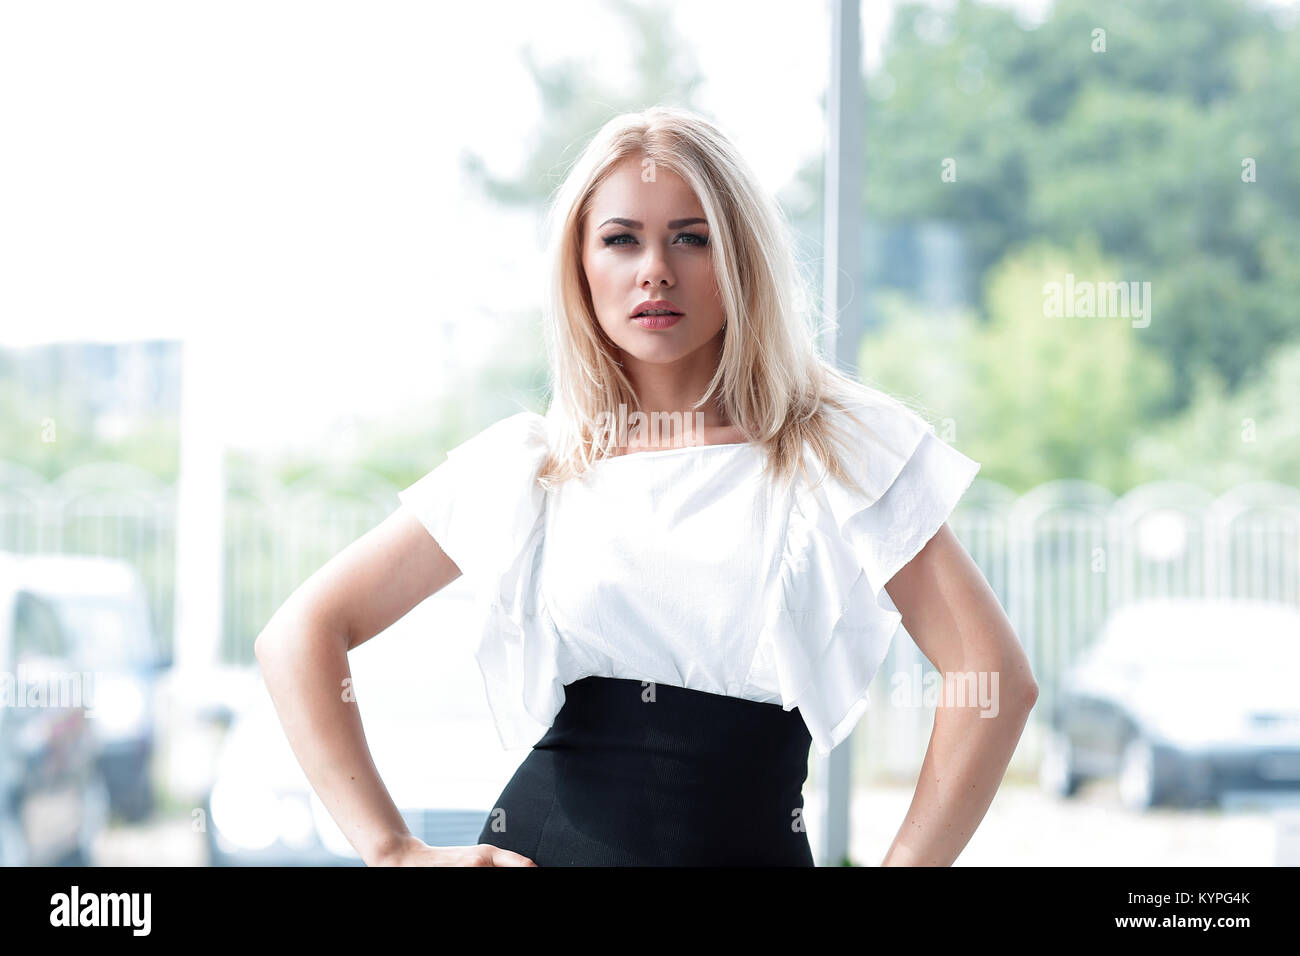 portrait of modern business woman in blurred background office. - Stock Image